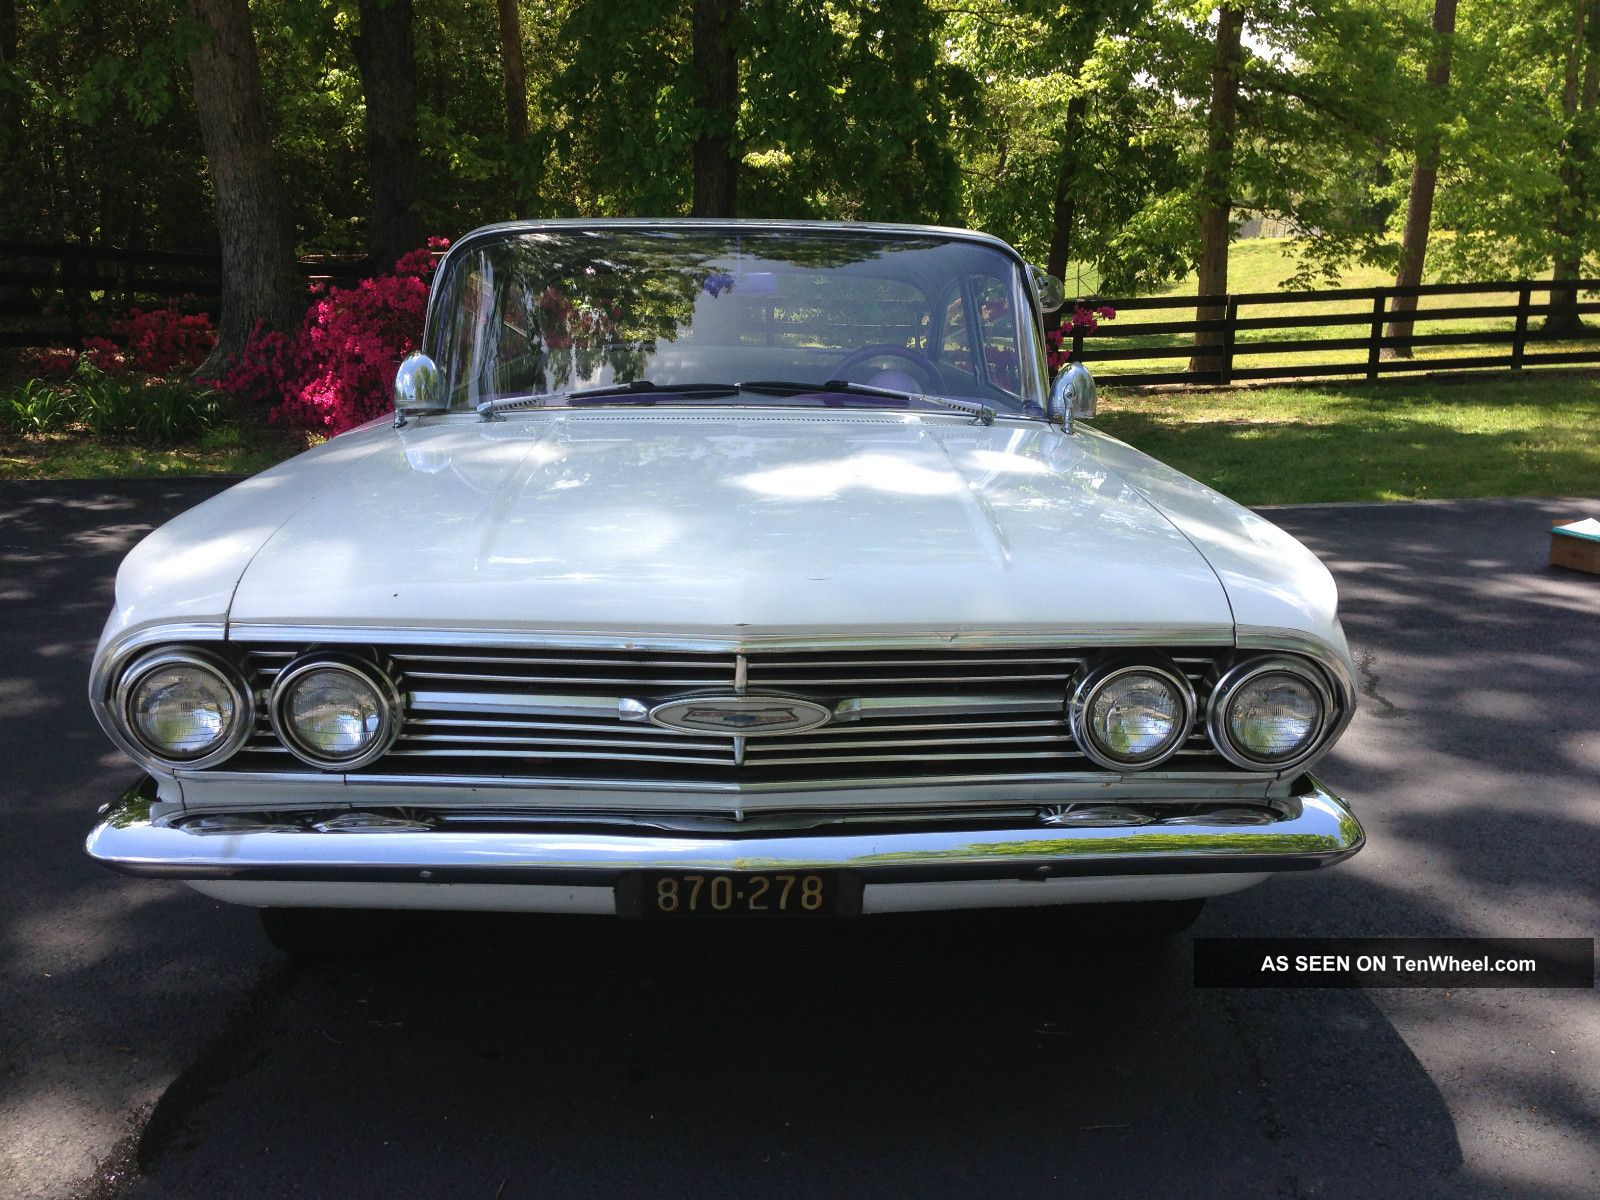 Used 1960 Chevrolet Impala For Sale  CarGurus